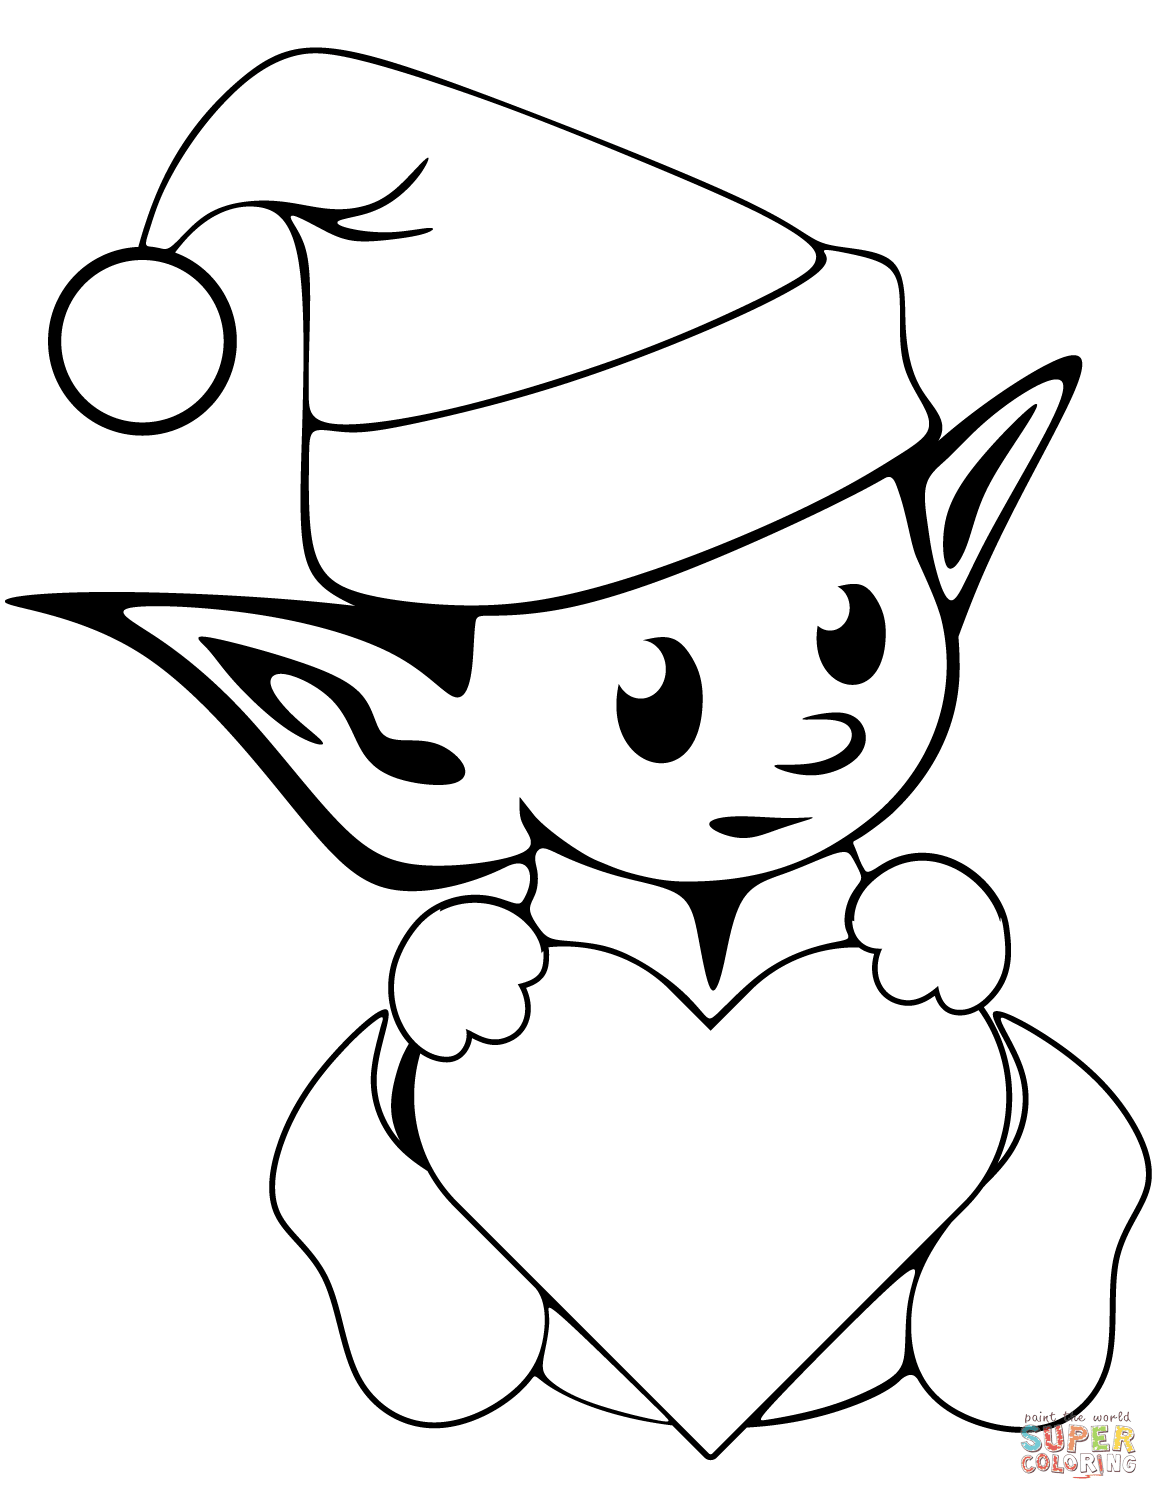 Christmas Elf Coloring Pages Printable With Cute Page Free